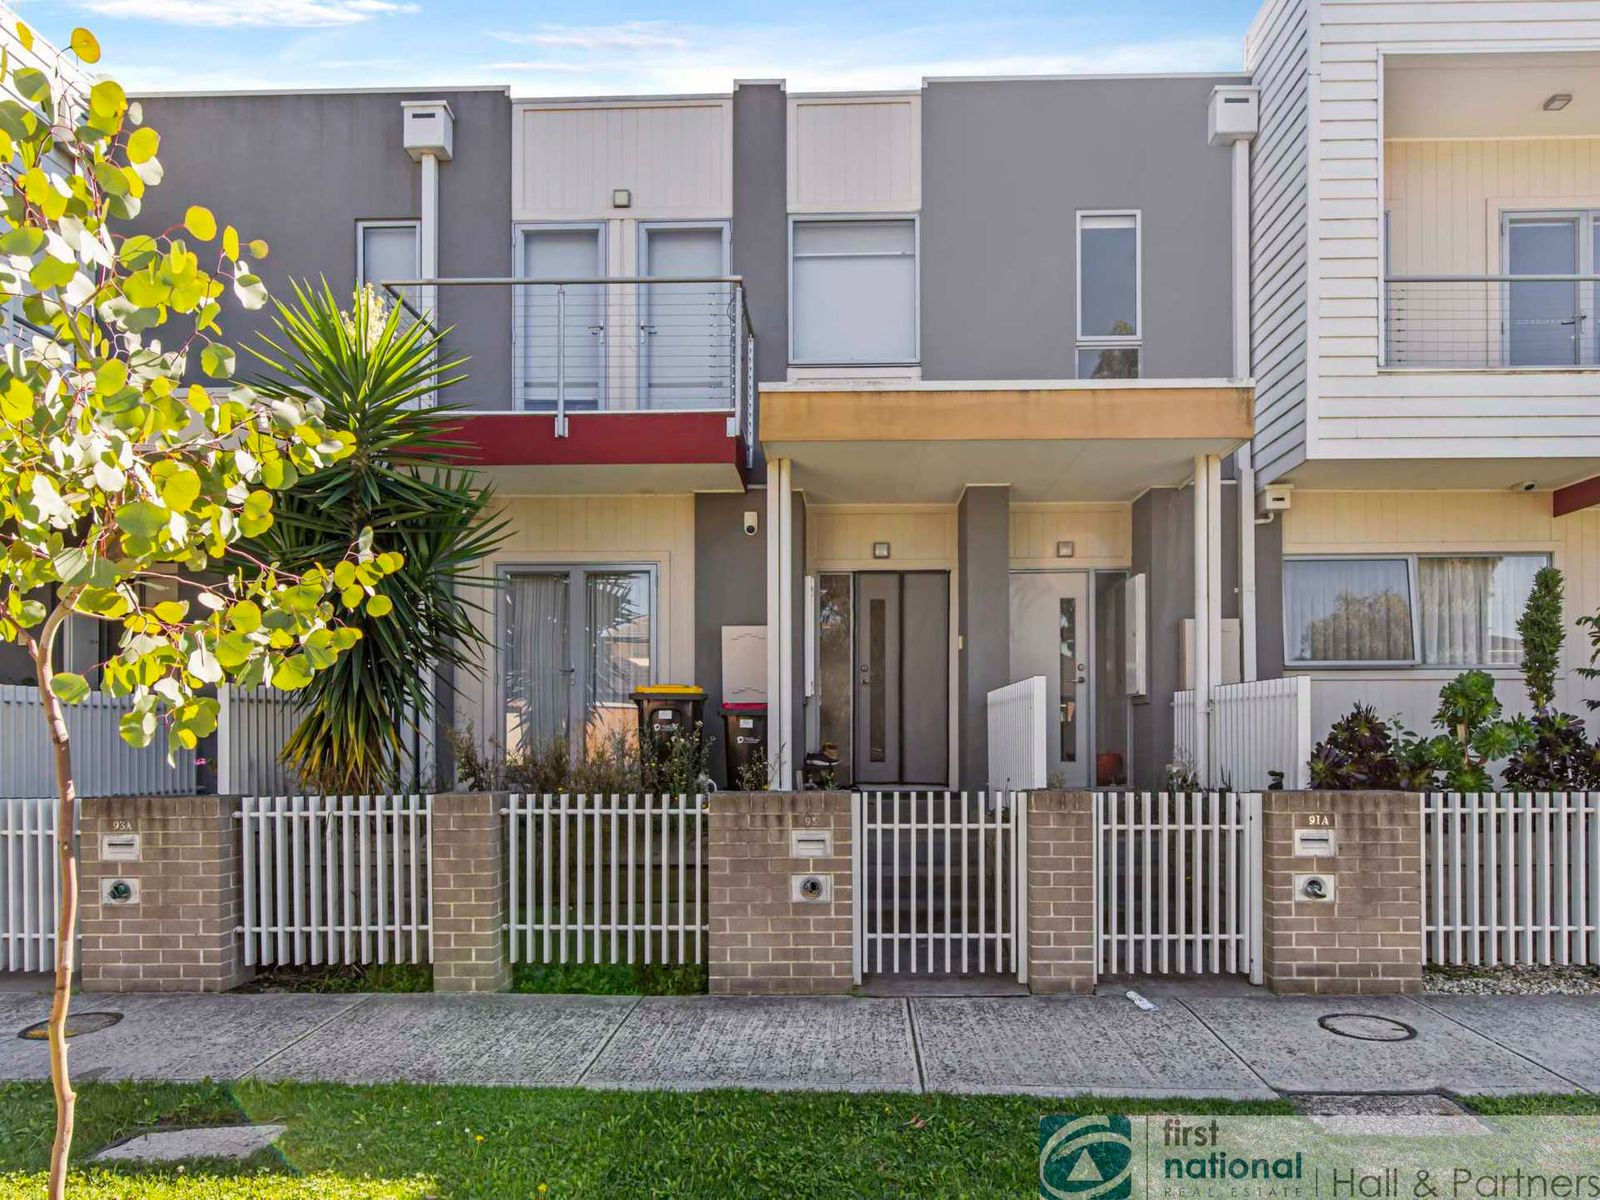 3/93 Hornsby Street, Dandenong, VIC 3175